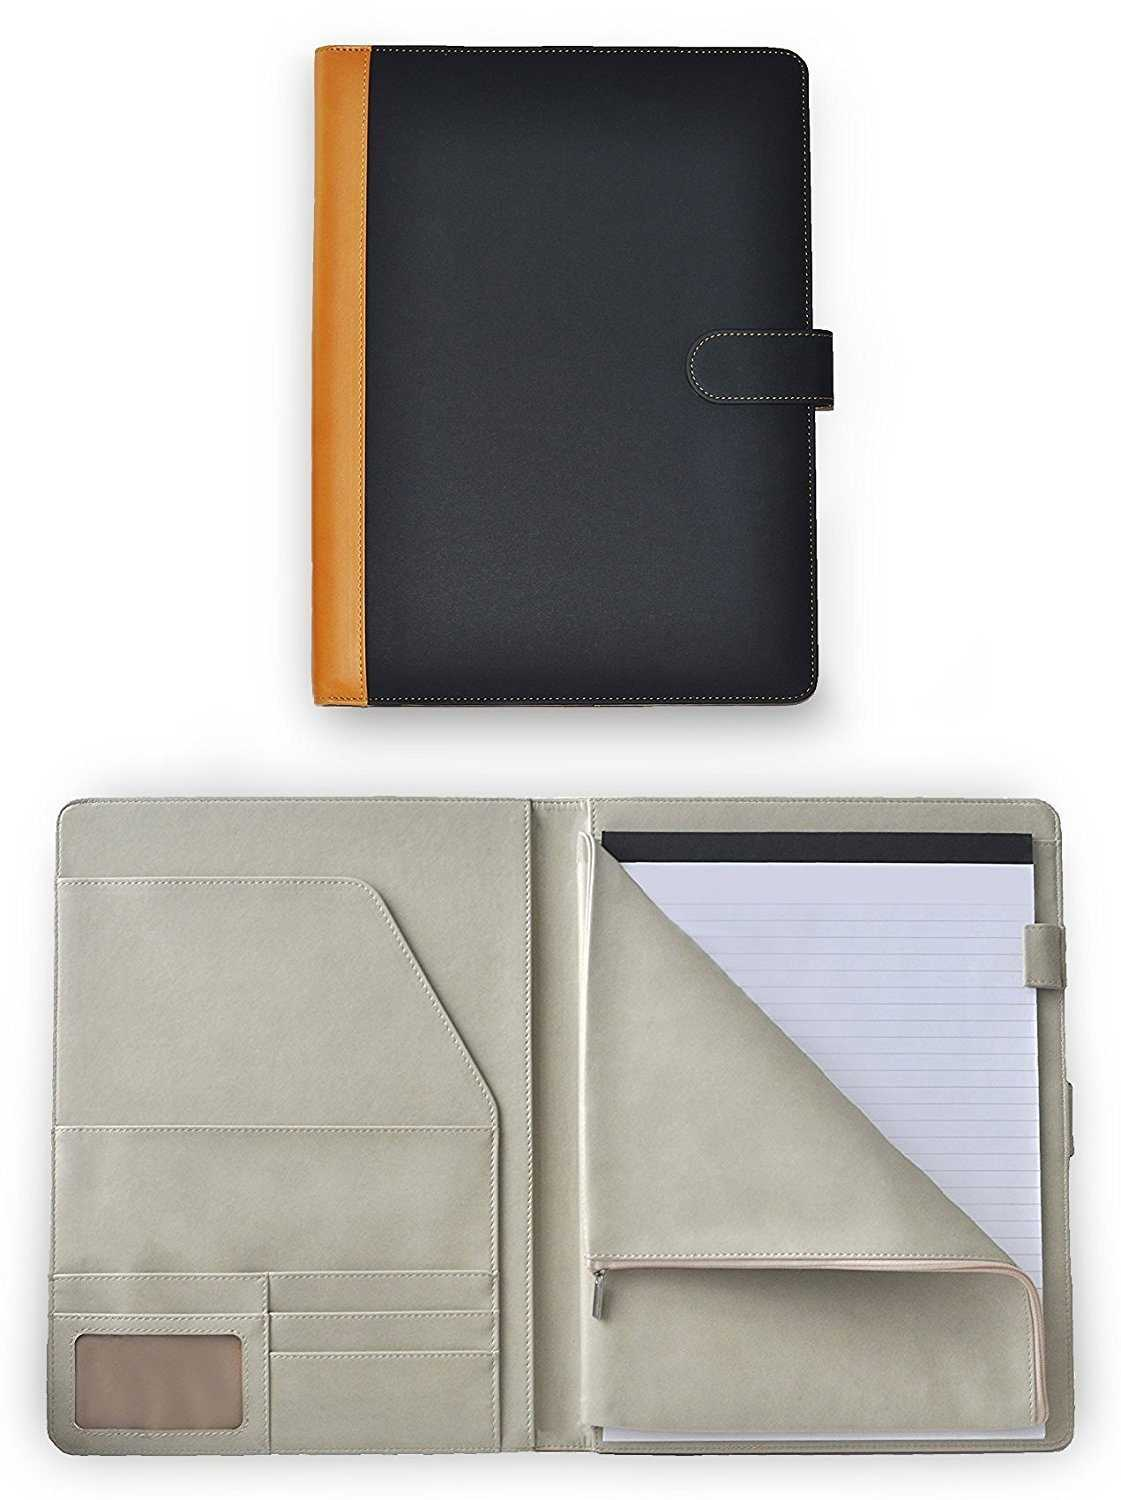 Deluxe Faux Leather Padfolio Portfolio Document Organizer with Zippered Closure Storage Pouch for Tablet PC/iPad/Kindle, Magnetic Closing Strap, Business Card Holders, Legal Size Writing Pad Included